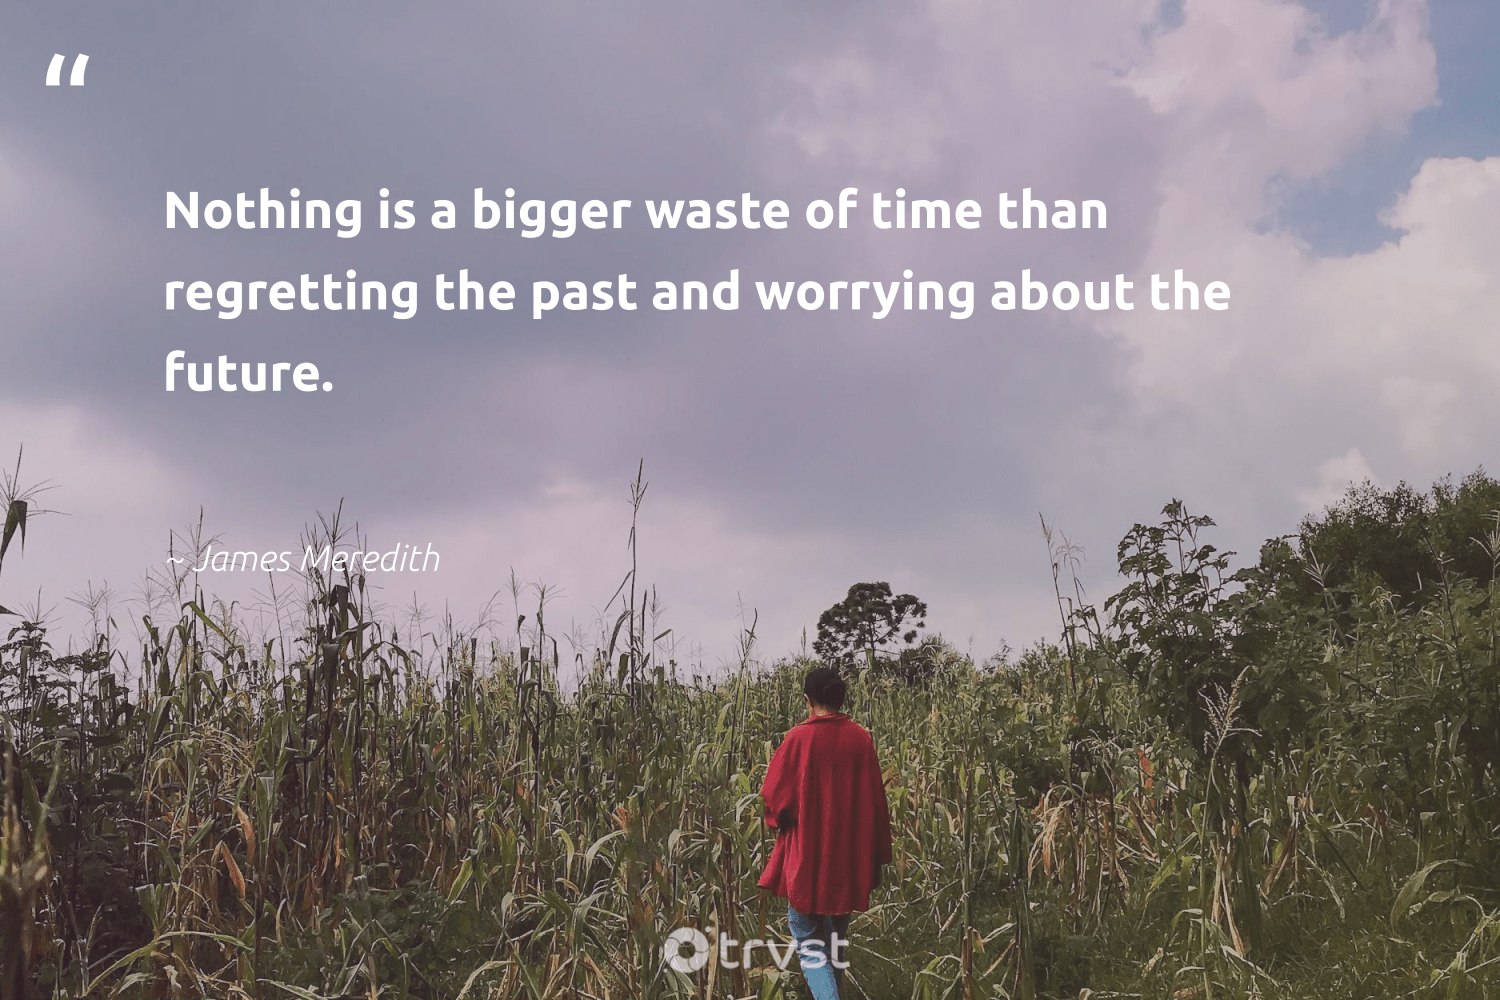 """Nothing is a bigger waste of time than regretting the past and worrying about the future.""  - James Meredith #trvst #quotes #waste #mindset #dogood #changemakers #planetearthfirst #nevergiveup #thinkgreen #health #collectiveaction #begreat"